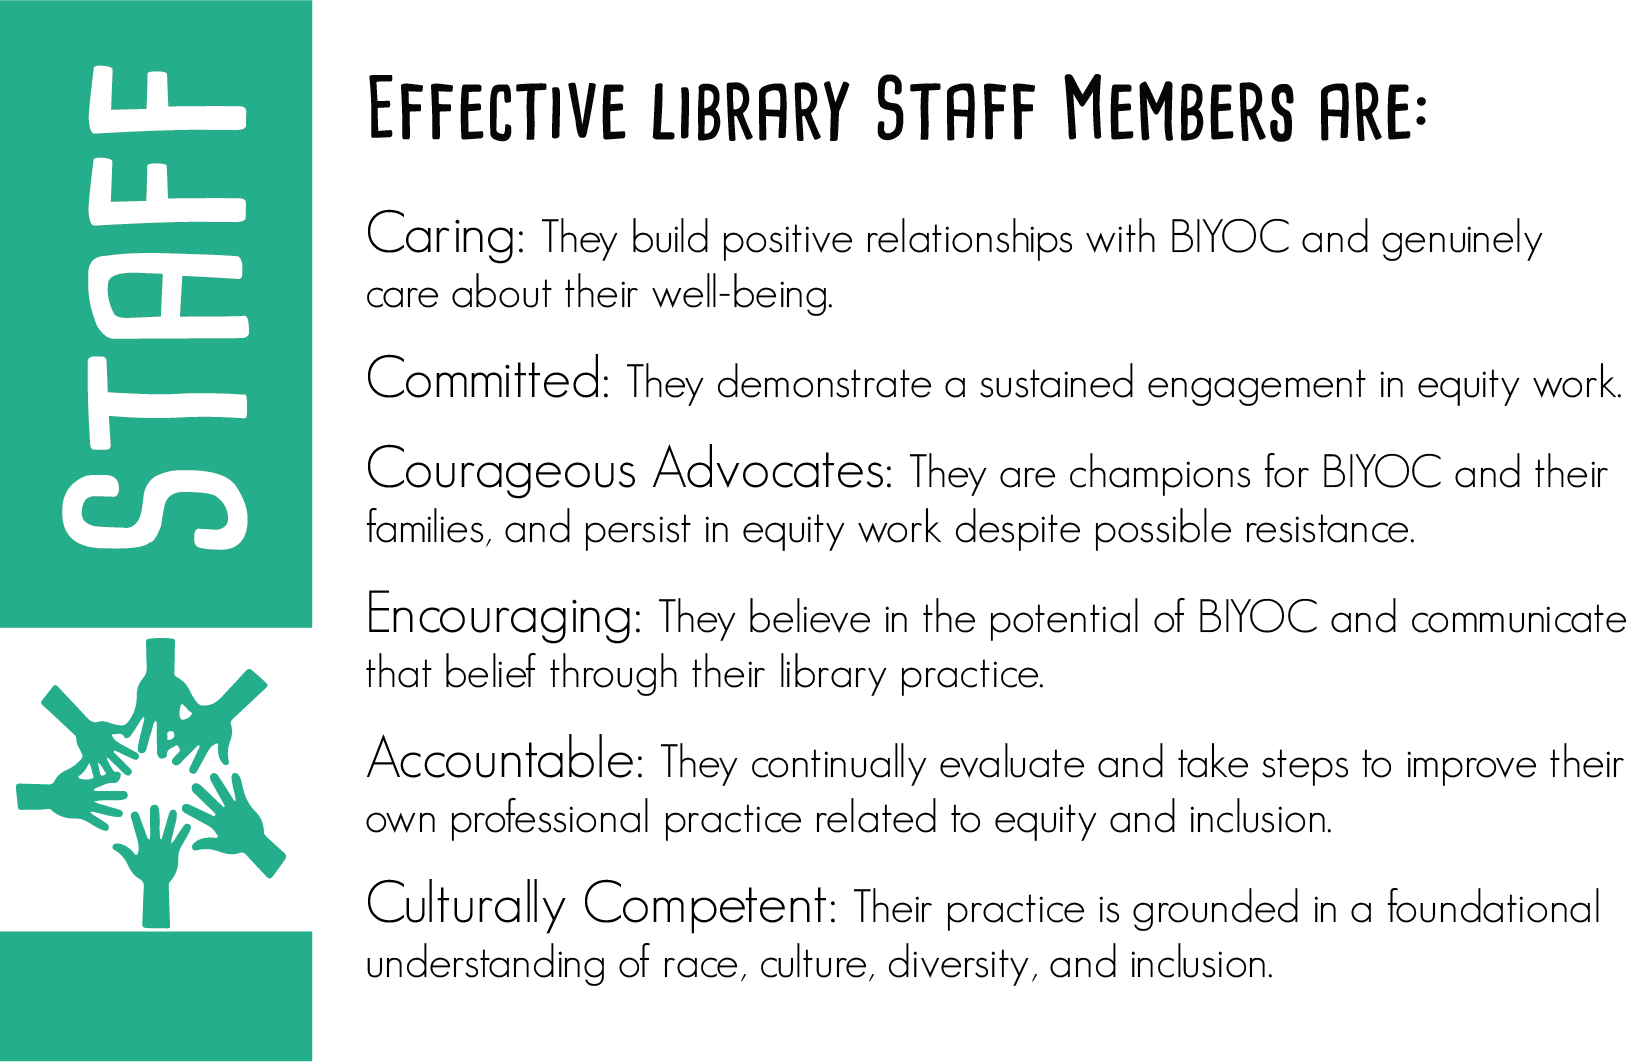 Effective library staff members are:  Caring: They build positive relationships with BIYOC and genuinely care about their well-being.  Committed: They demonstrate a sustained engagement in equity work.  Courageous Advocates: They are champions for BIYOC and their families, and persist in equity work despite possible resistance.  Encouraging: They believe in the potential of BIYOC and communicate that belief through their library practice.  Accountable: They continually evaluate and take steps to improve their own professional practice related to equity and inclusion.  Culturally Competent: Their practice is grounded in a foundational understanding of race, culture, diversity, and inclusion.